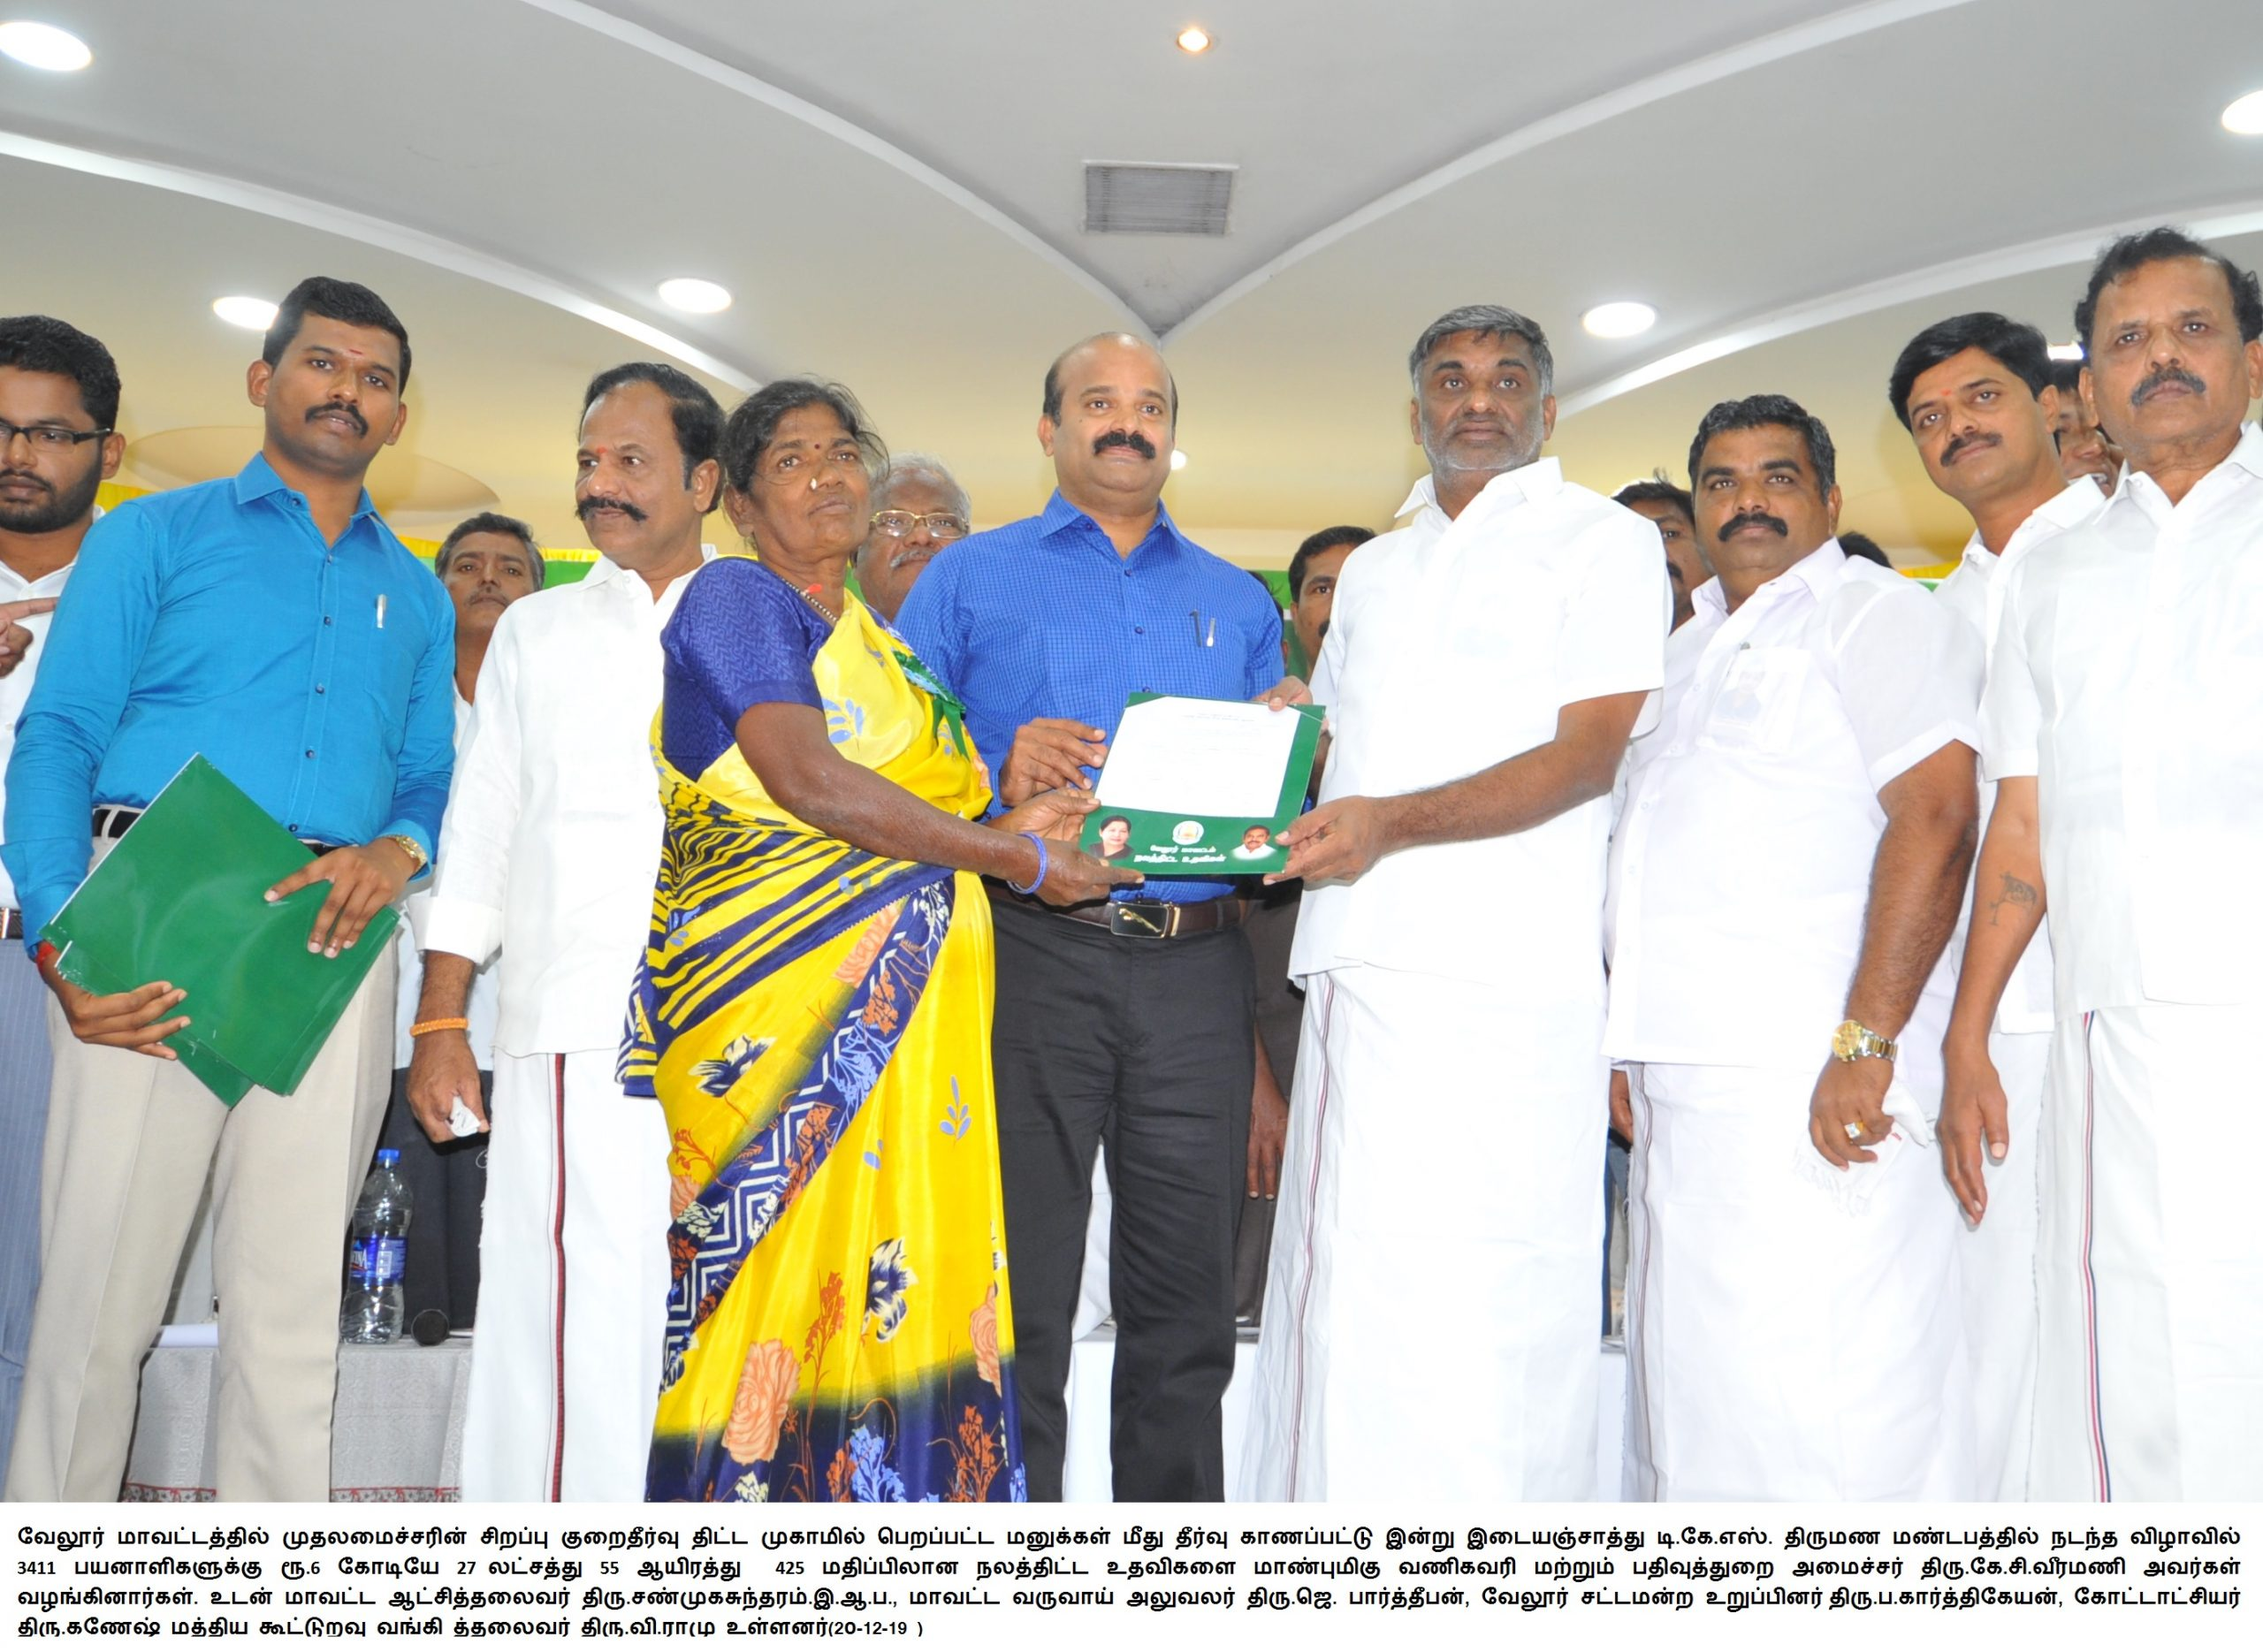 Minister function 20/12/2019